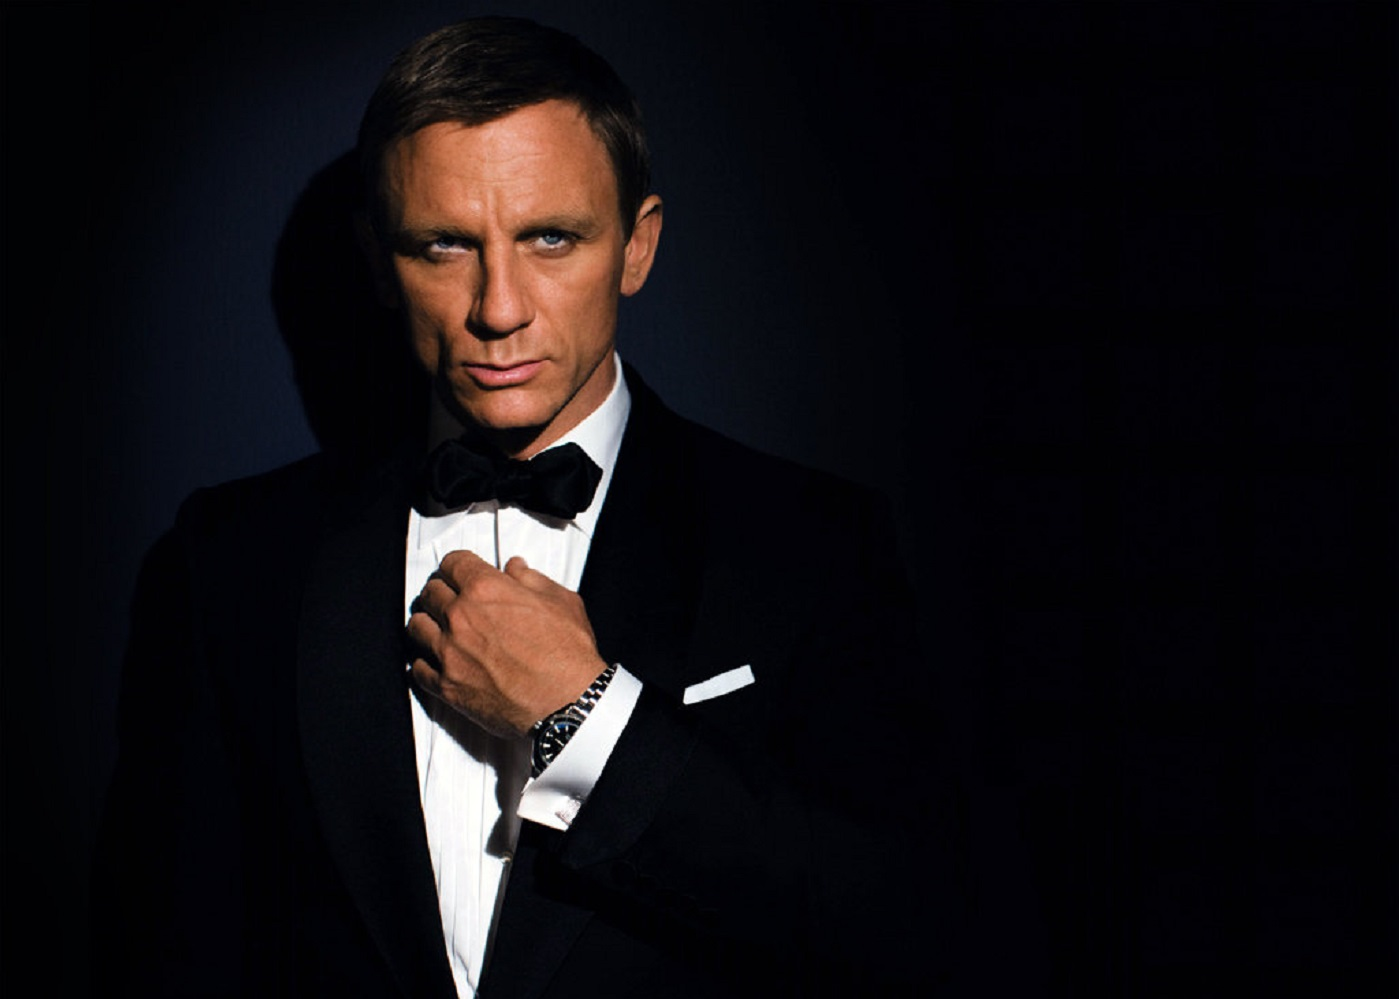 For Your Eyes Only: Story Rumors on Bond 25